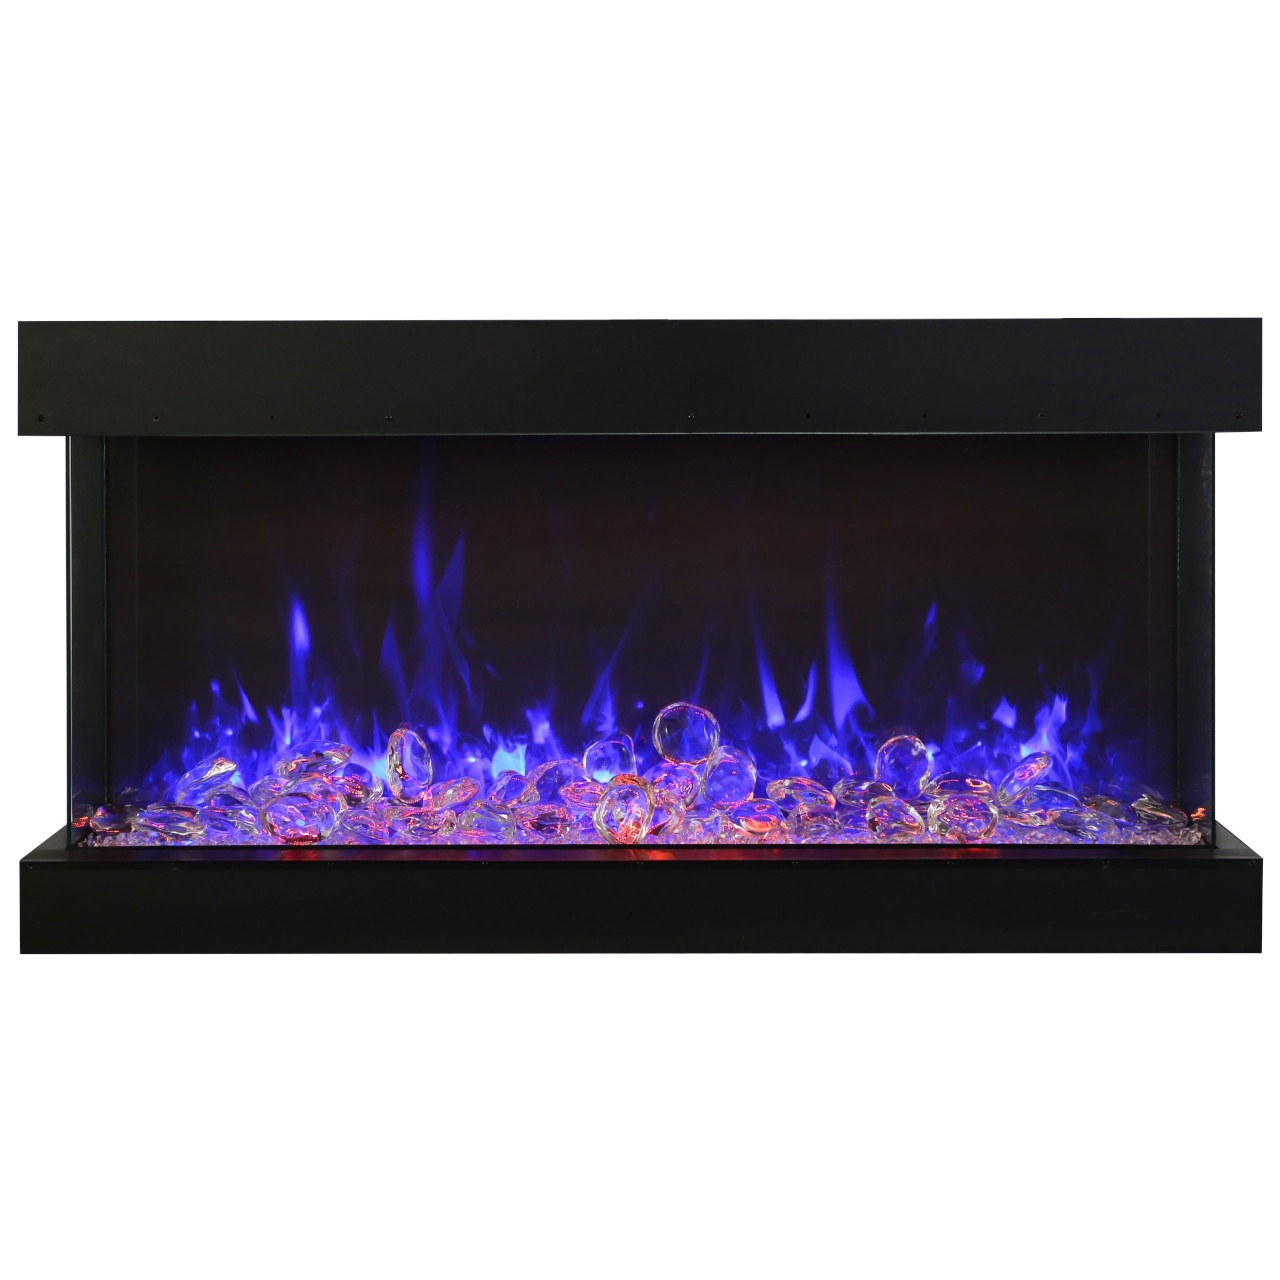 amantii 50-inch electric fireplace with extra tall glass view opening